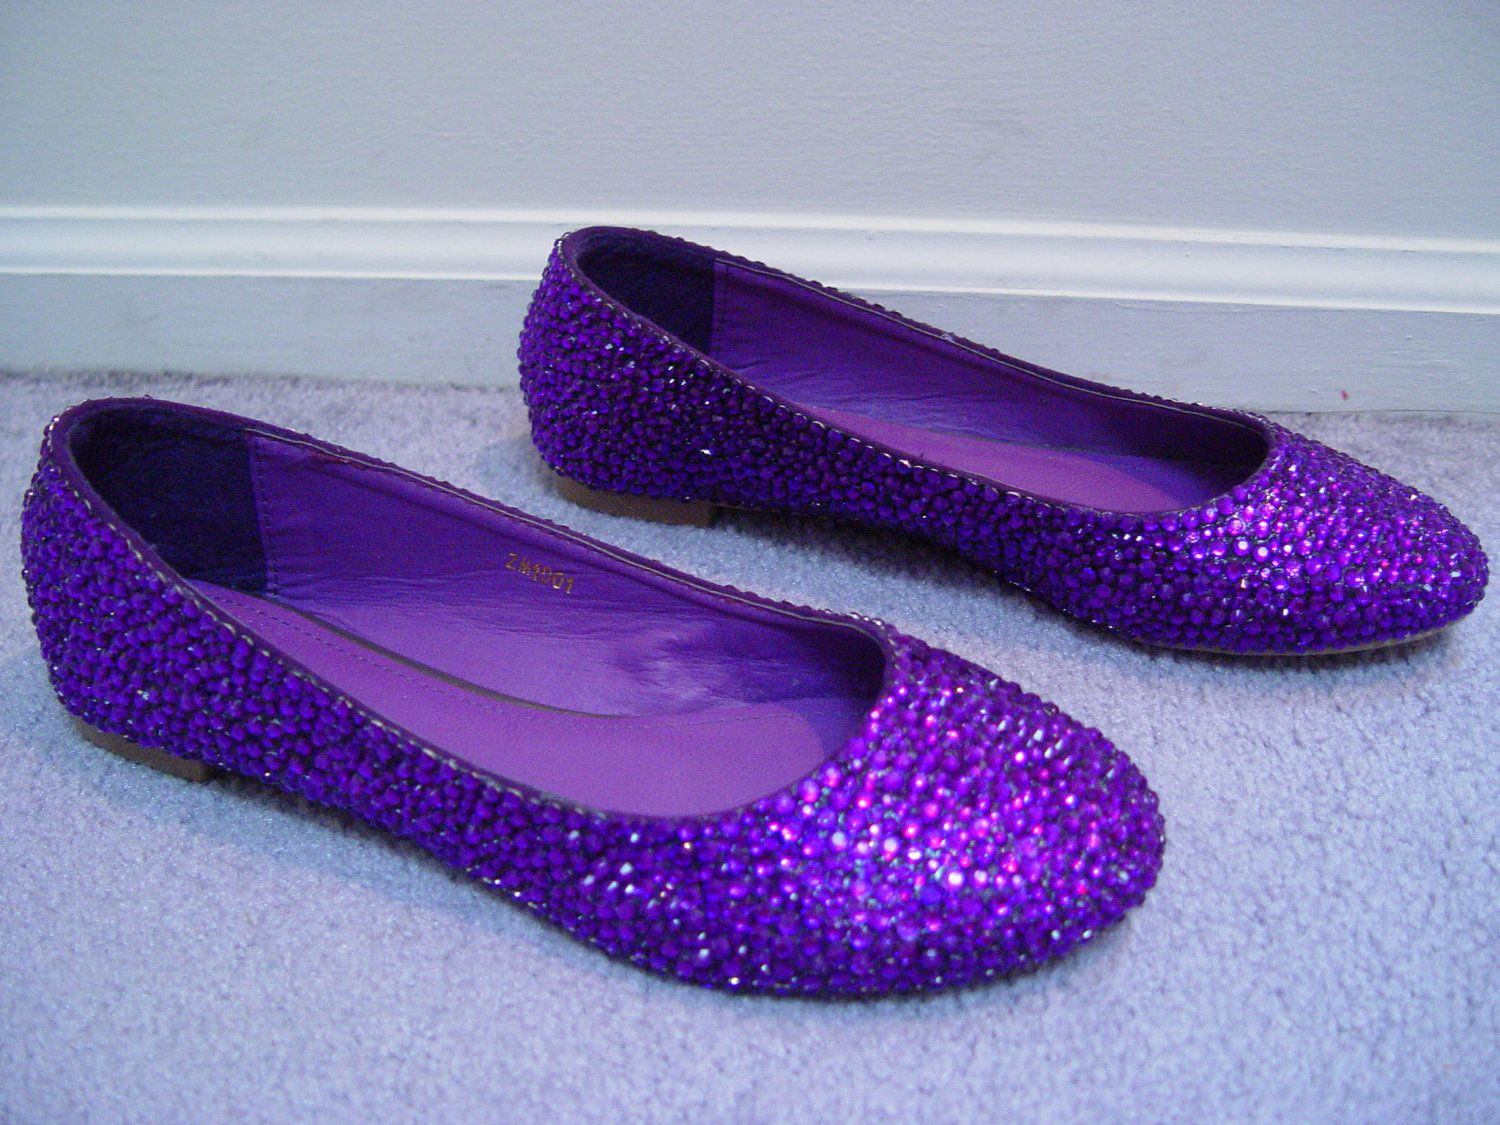 Wedding Shoes Ideas Dark Purple Flat In Ballet Design Comined With Fabrics Material